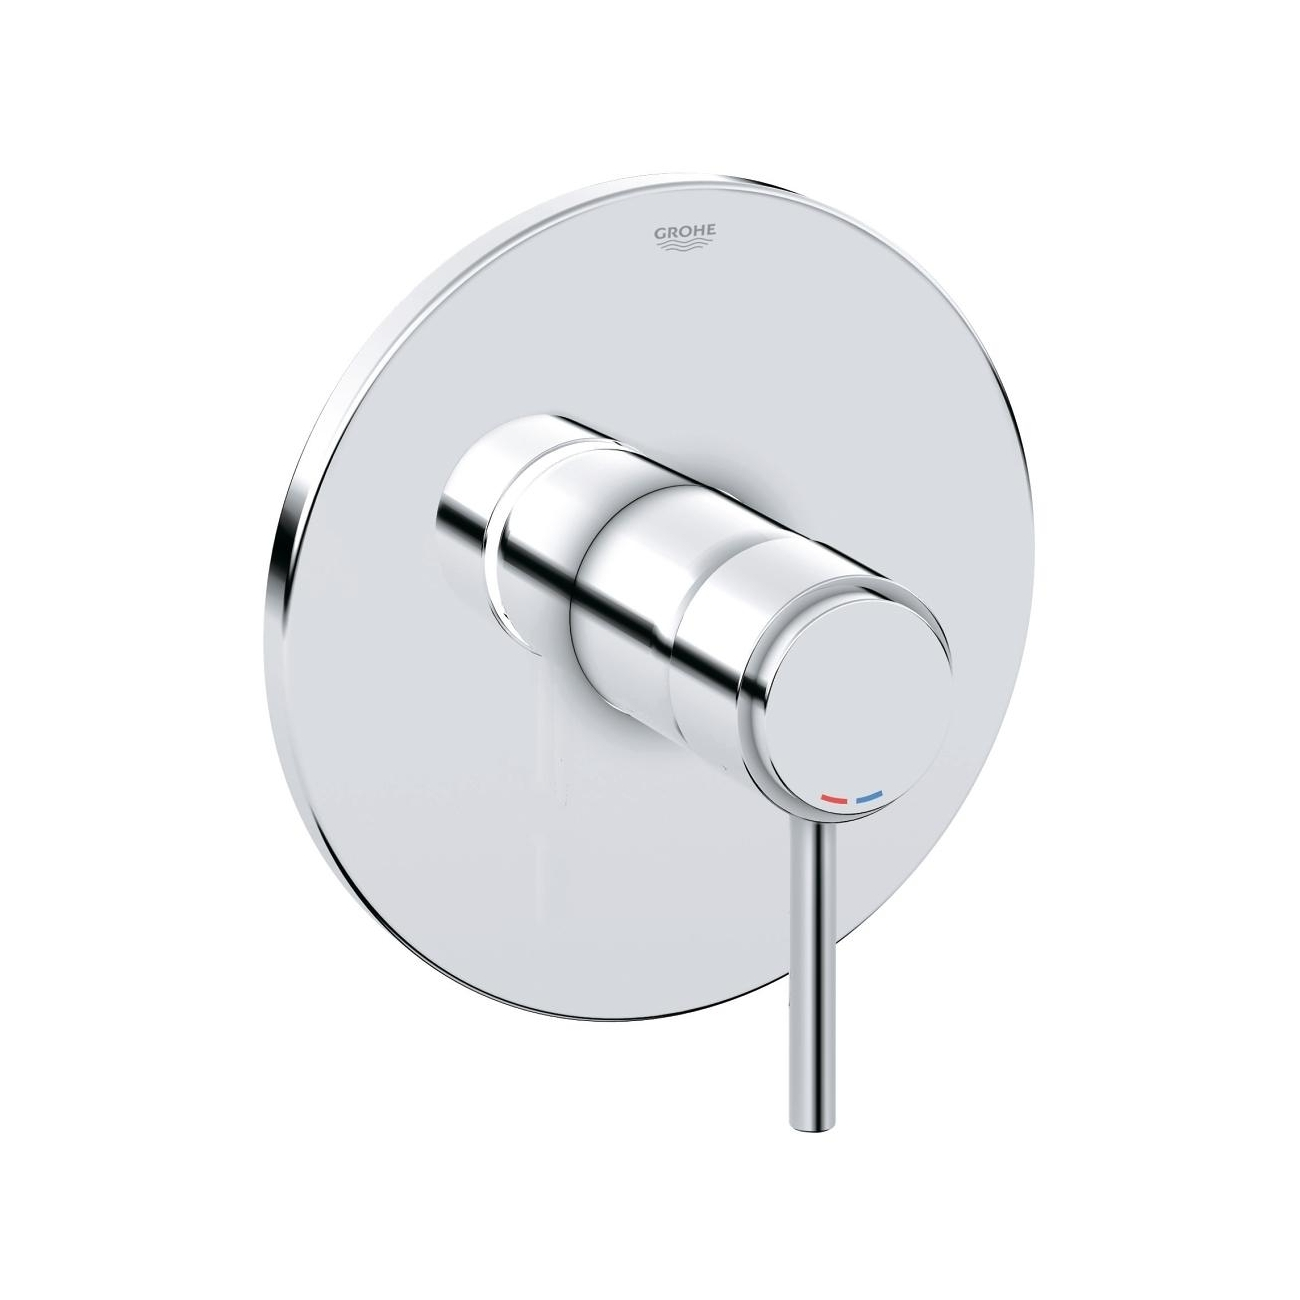 GROHE ATRIO Single-lever shower mixer - TattaHome